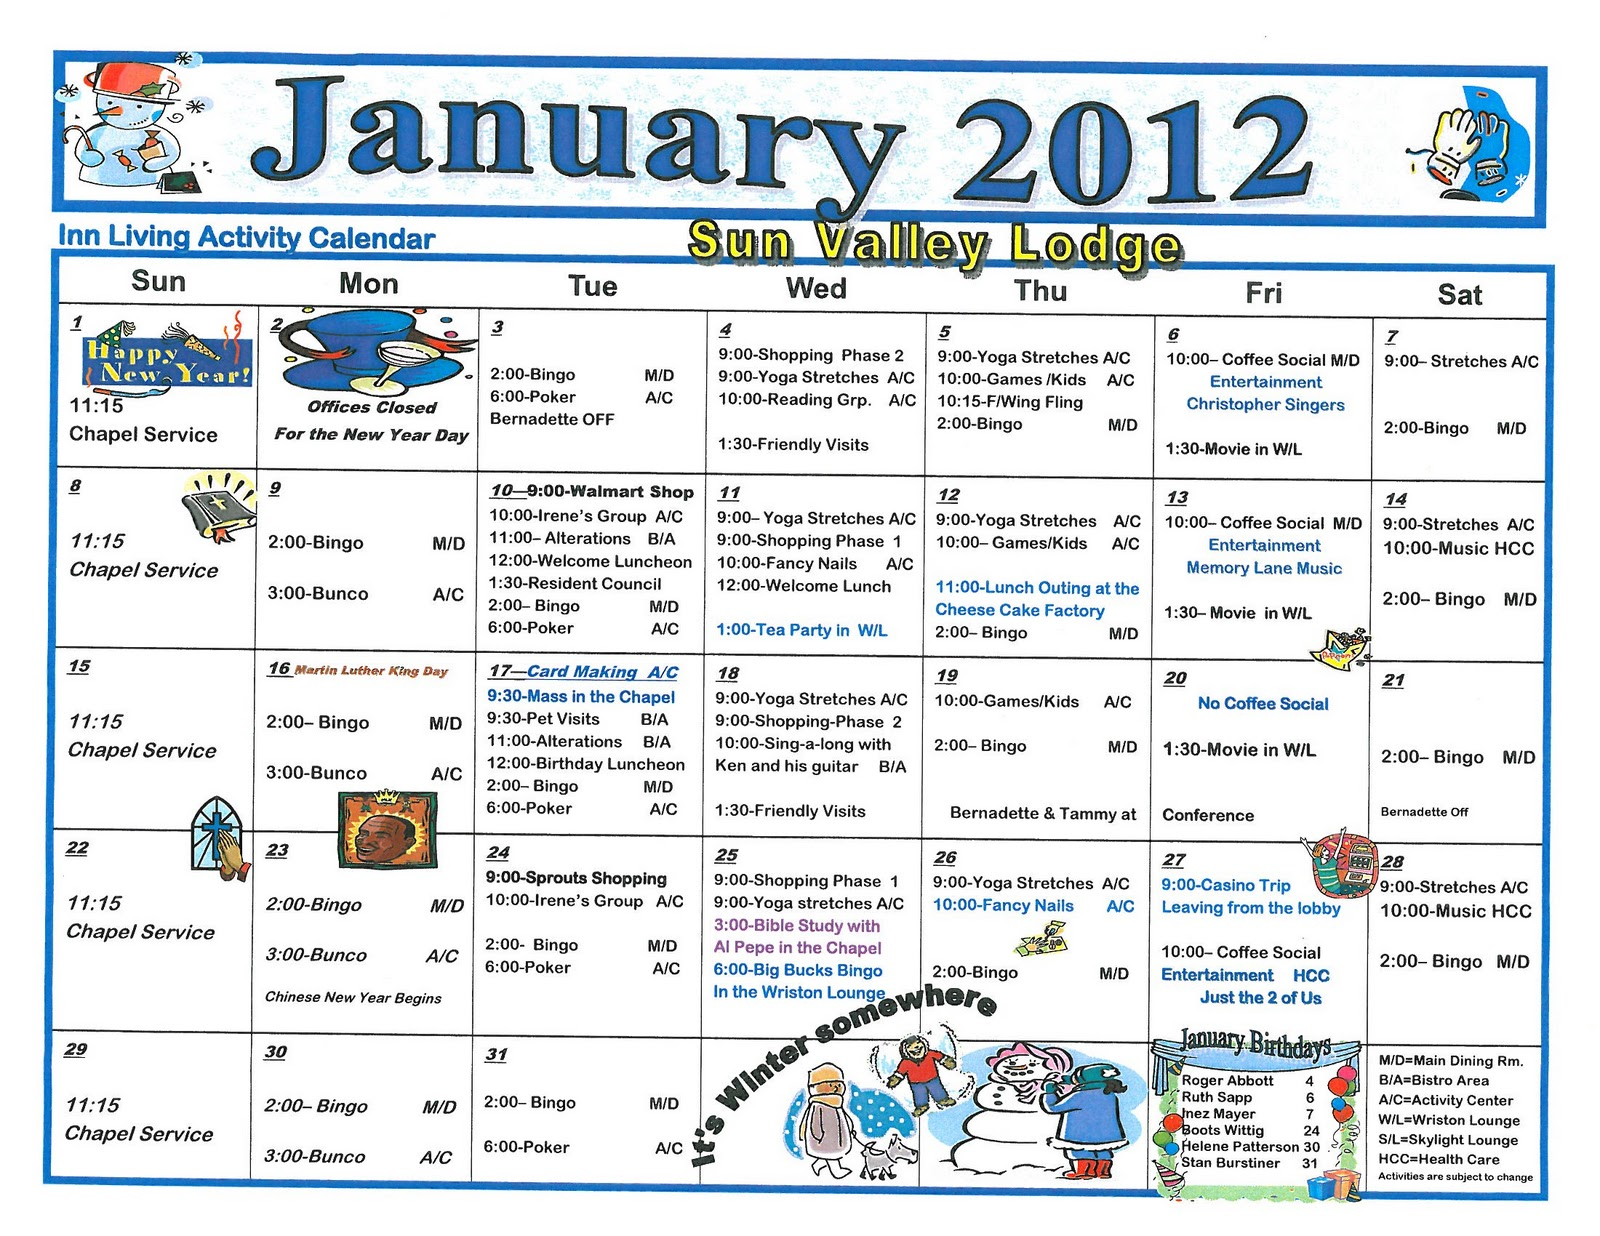 24 Best Calendars/highlight Monthly Activities Images Intended For Assisted Living Activity Calendar Ideas